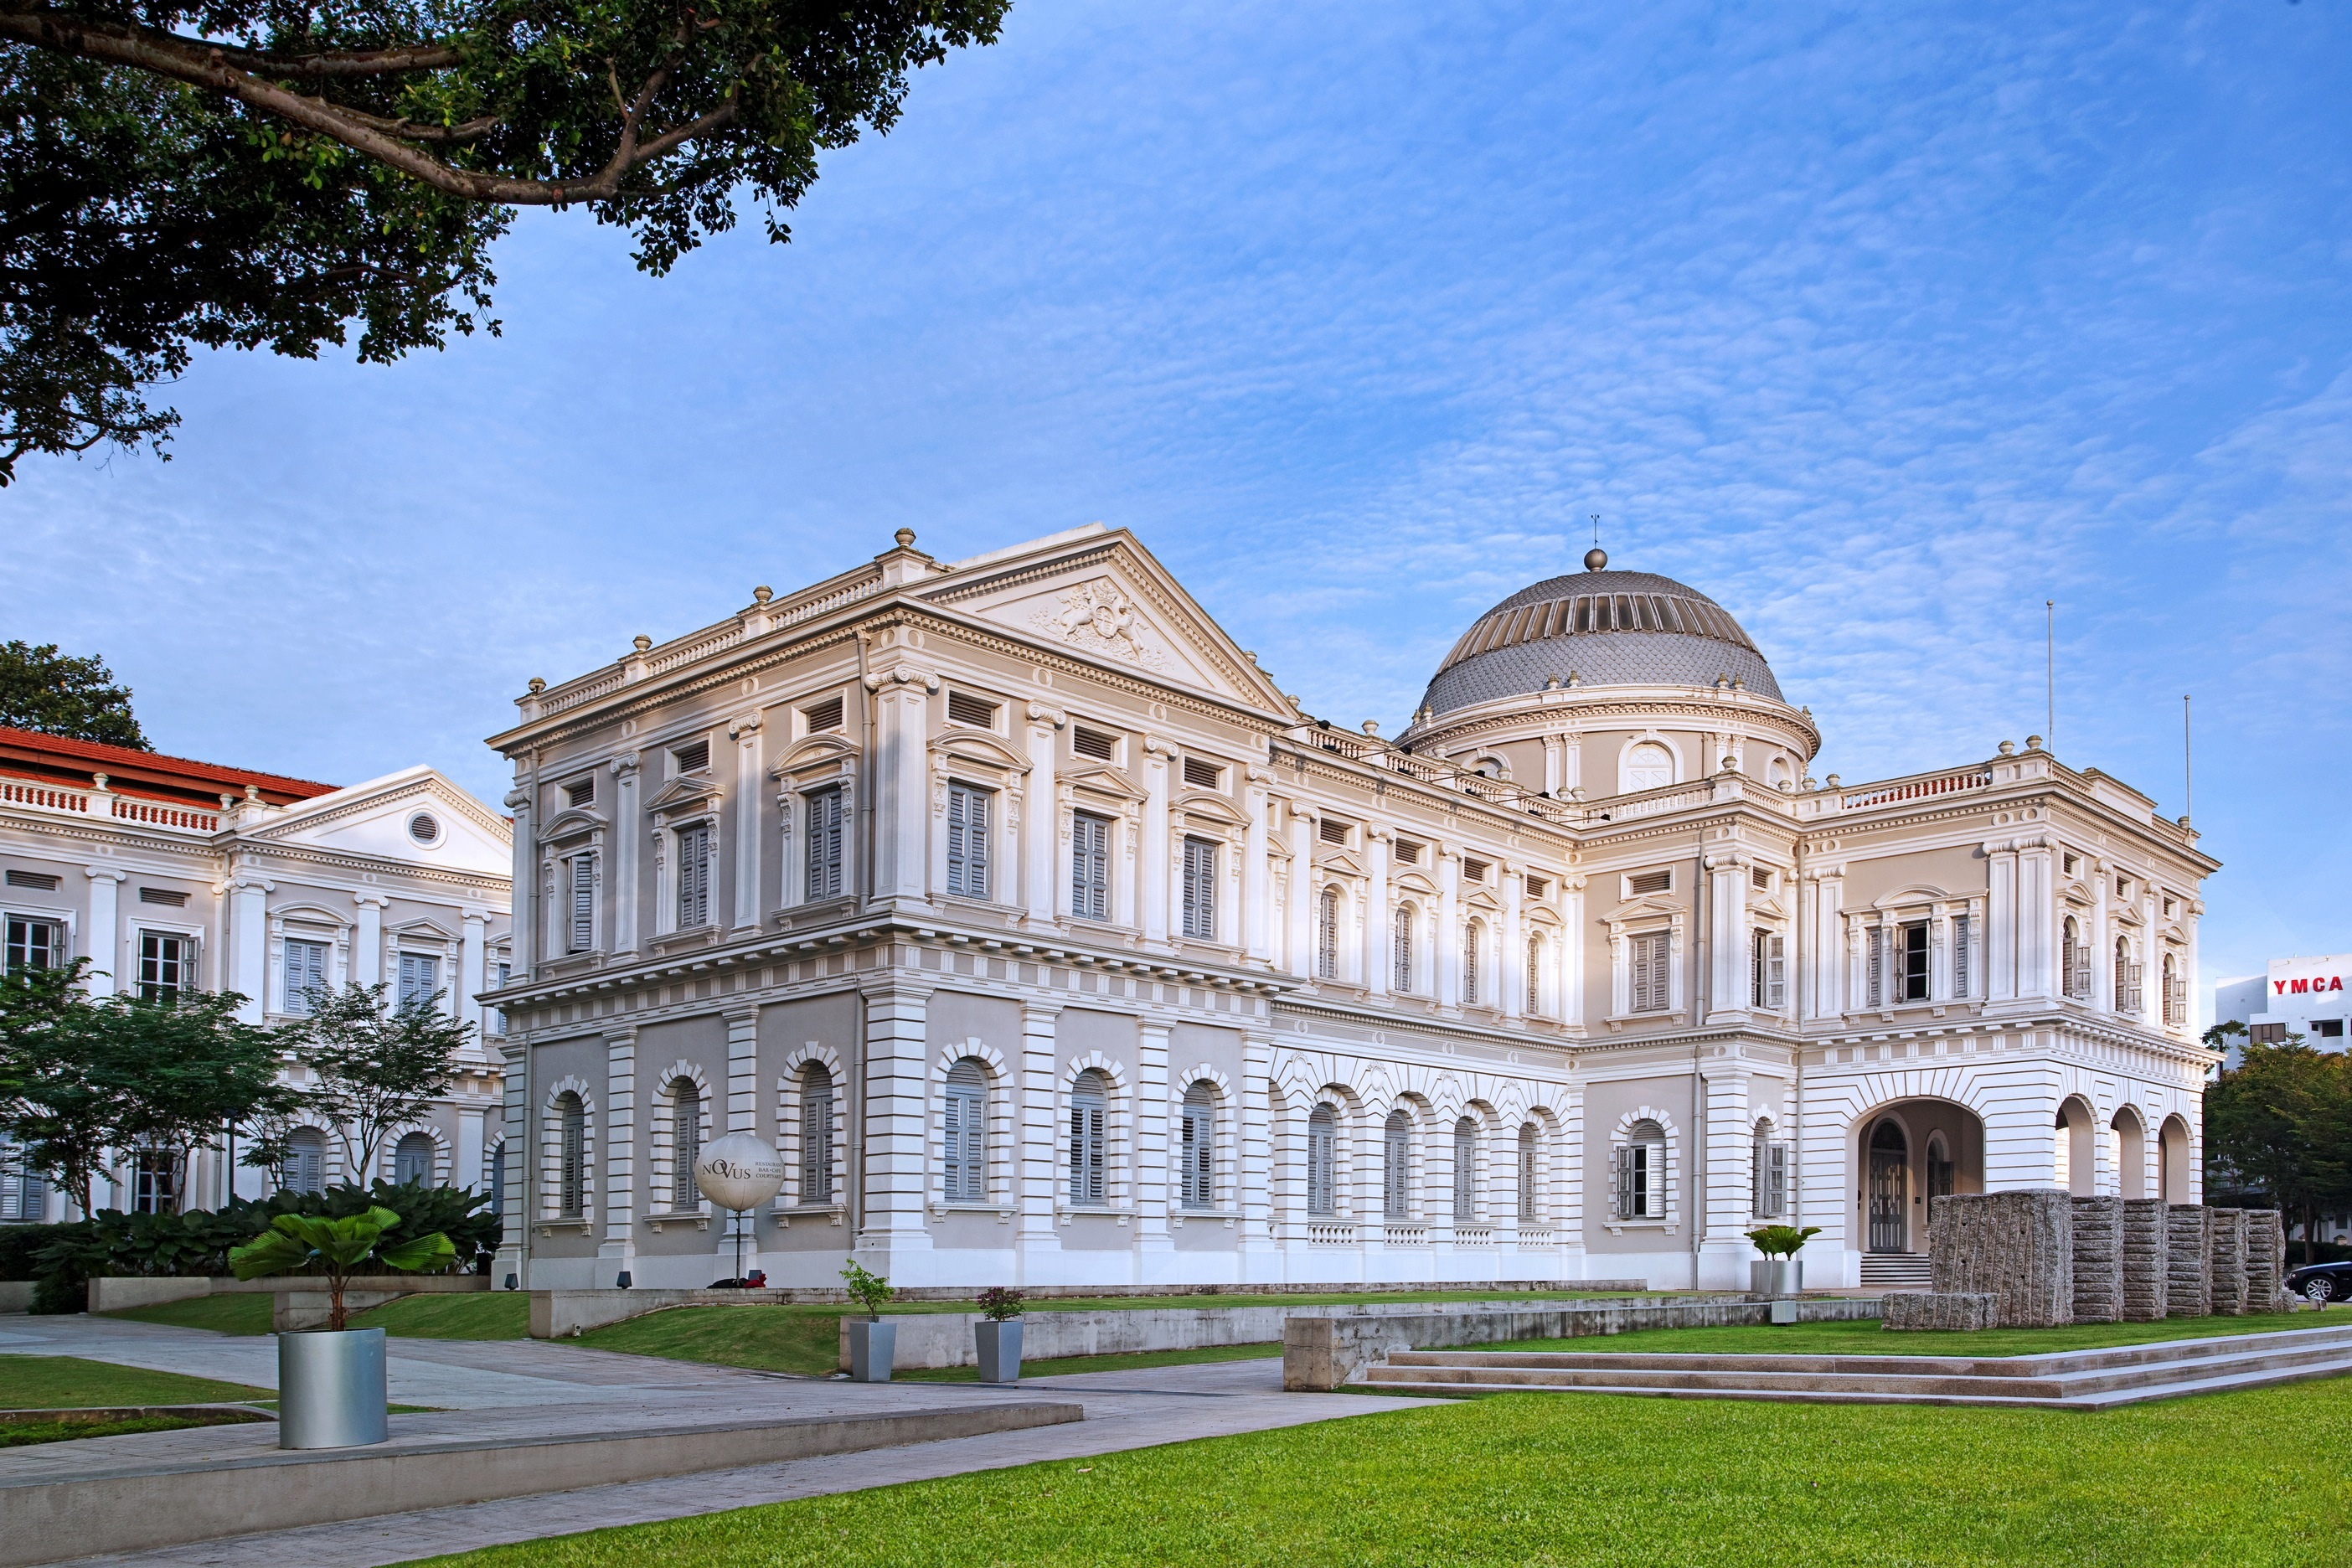 Learn more about the city's history at National Museum Singapore